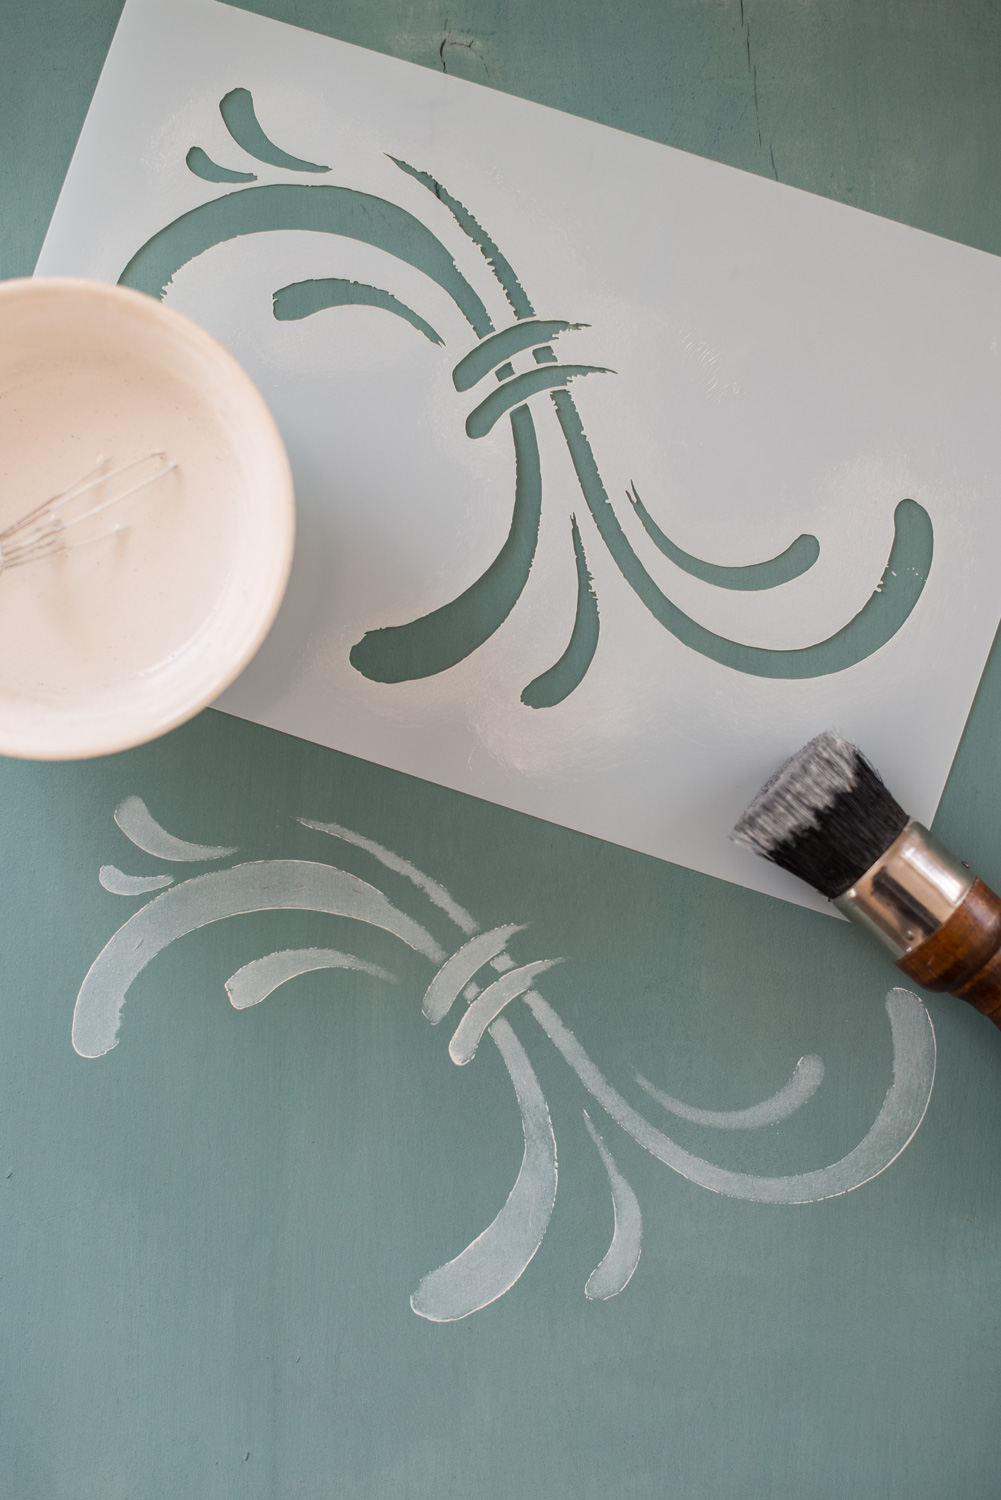 Miss Mustard Seed's hand painted stencils are available at My Painted Door. This stencil is the Susan design.